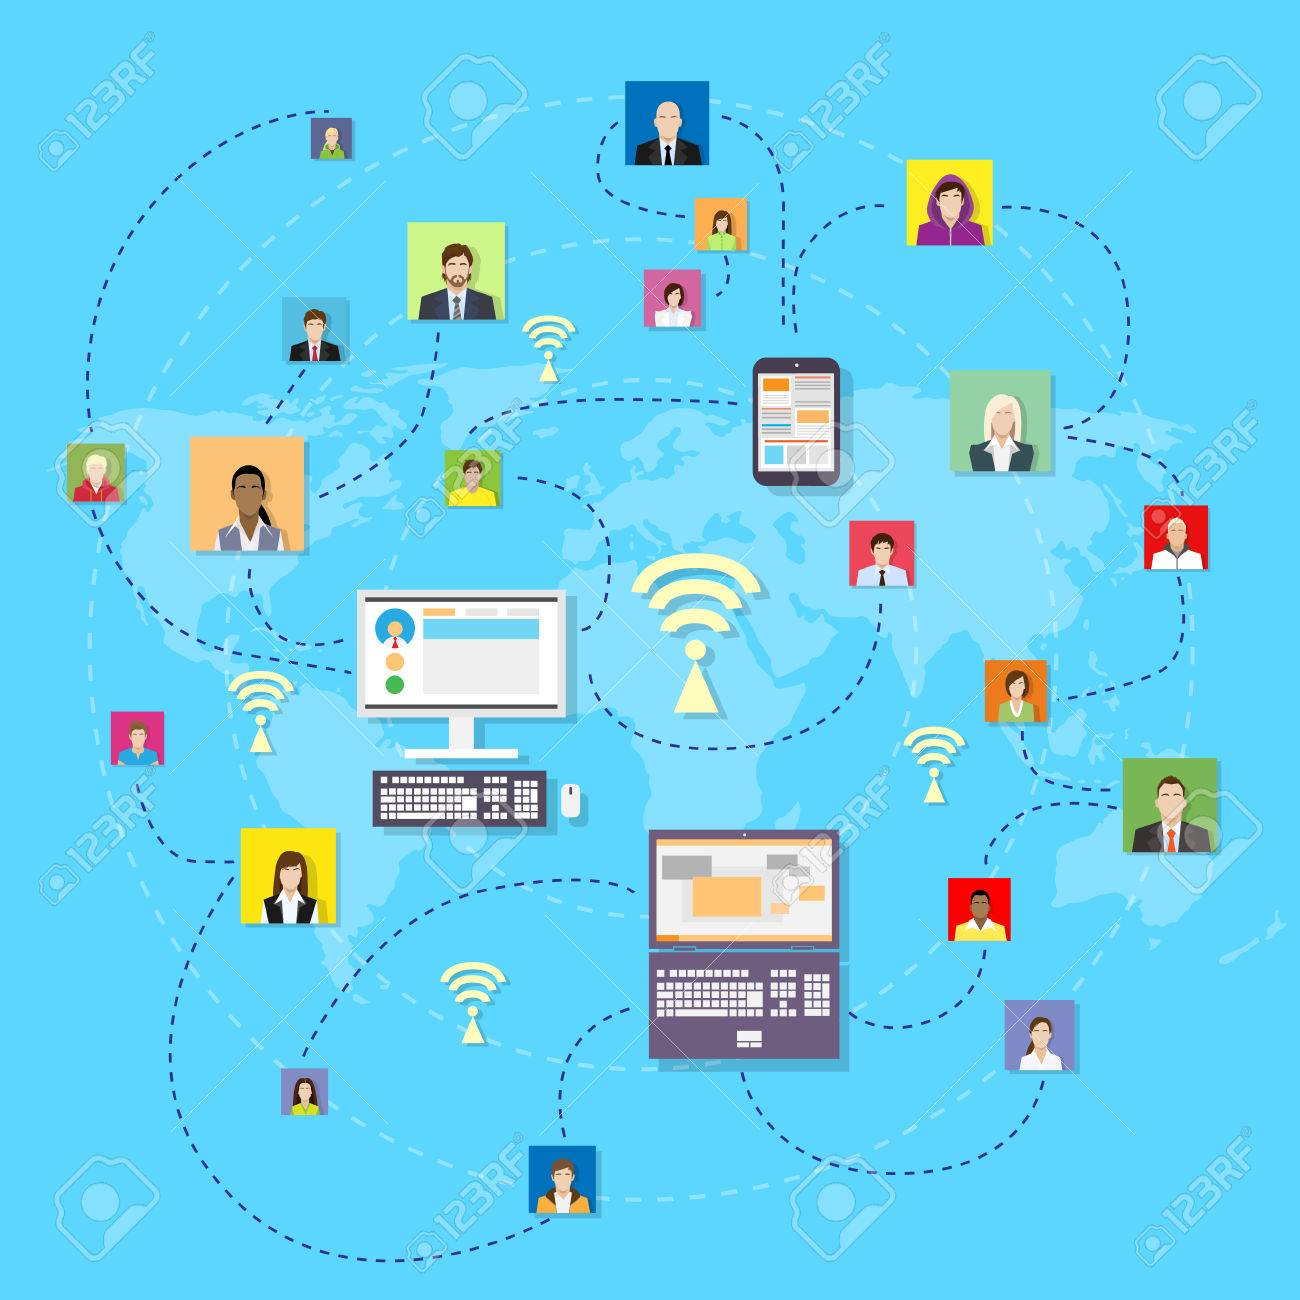 Social media communication world map concept internet network social media communication world map concept internet network connection people flat vector illustration stock vector gumiabroncs Image collections